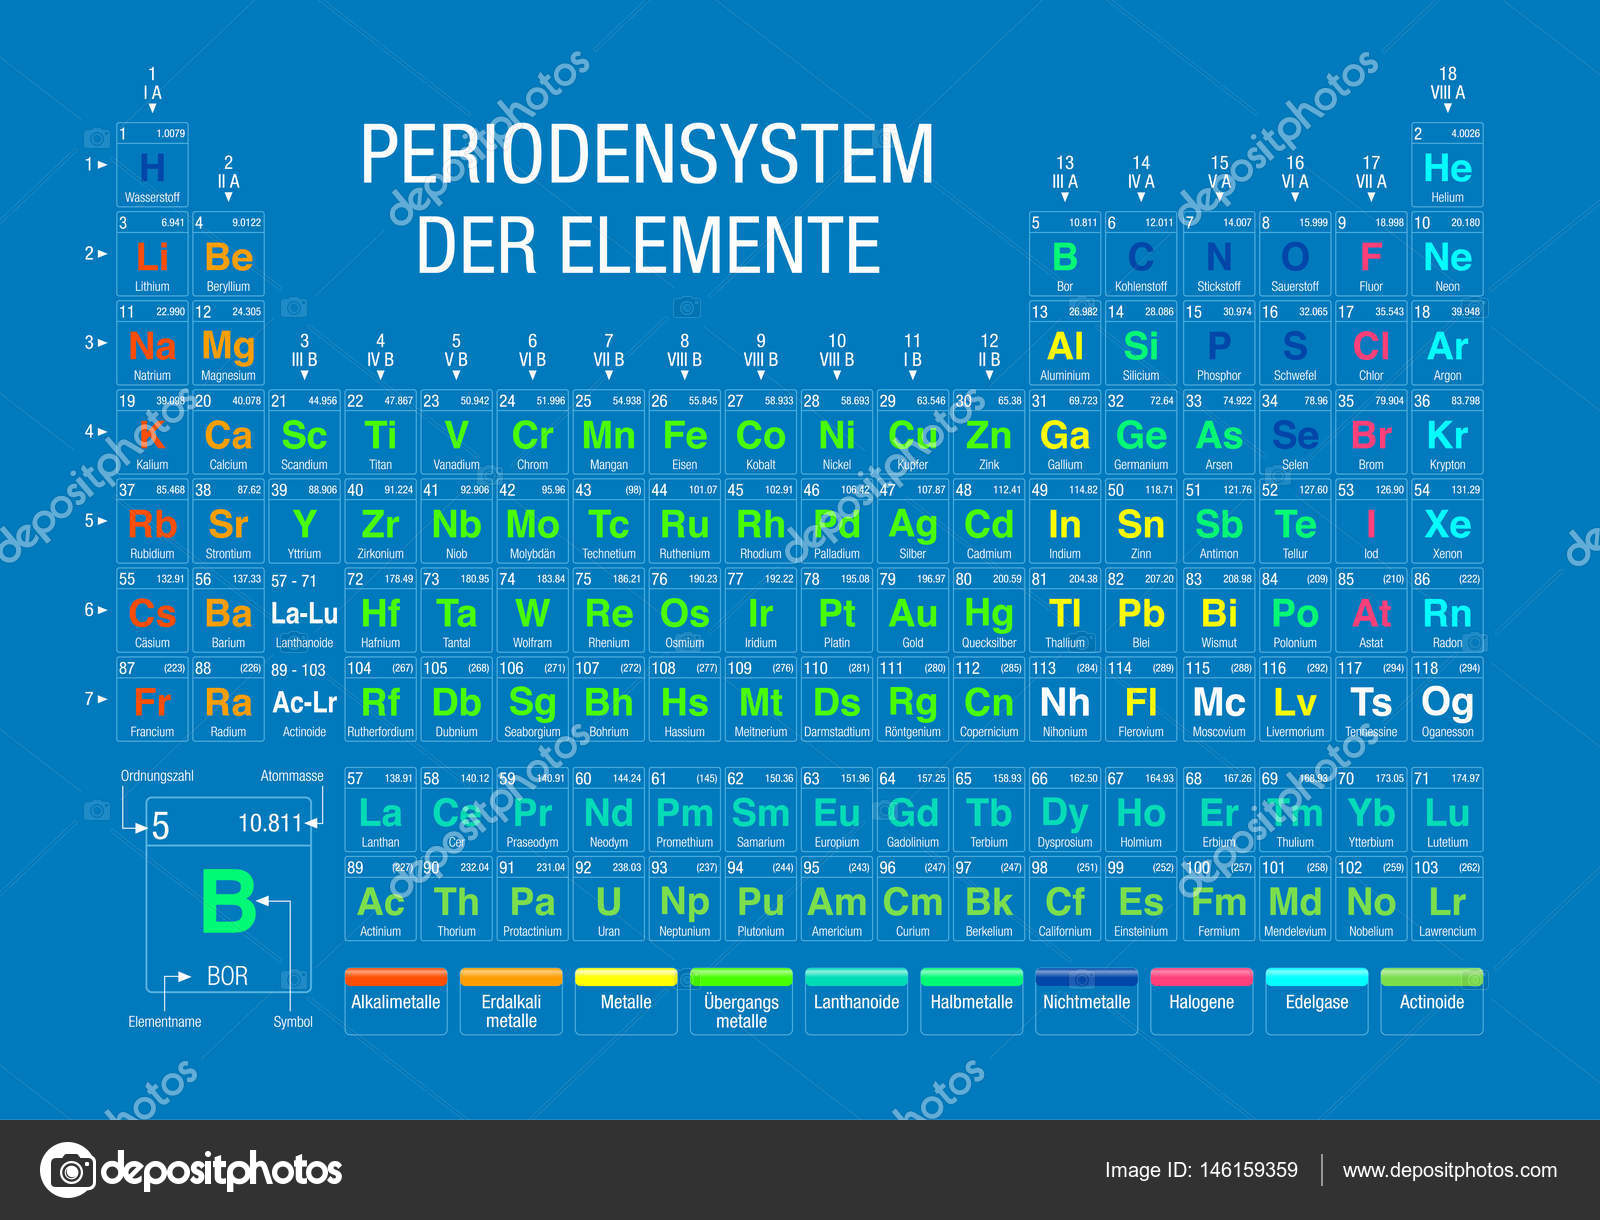 Periodensystem der elemente periodic table of elements in german periodensystem der elemente periodic table of elements in german language on blue background with urtaz Choice Image